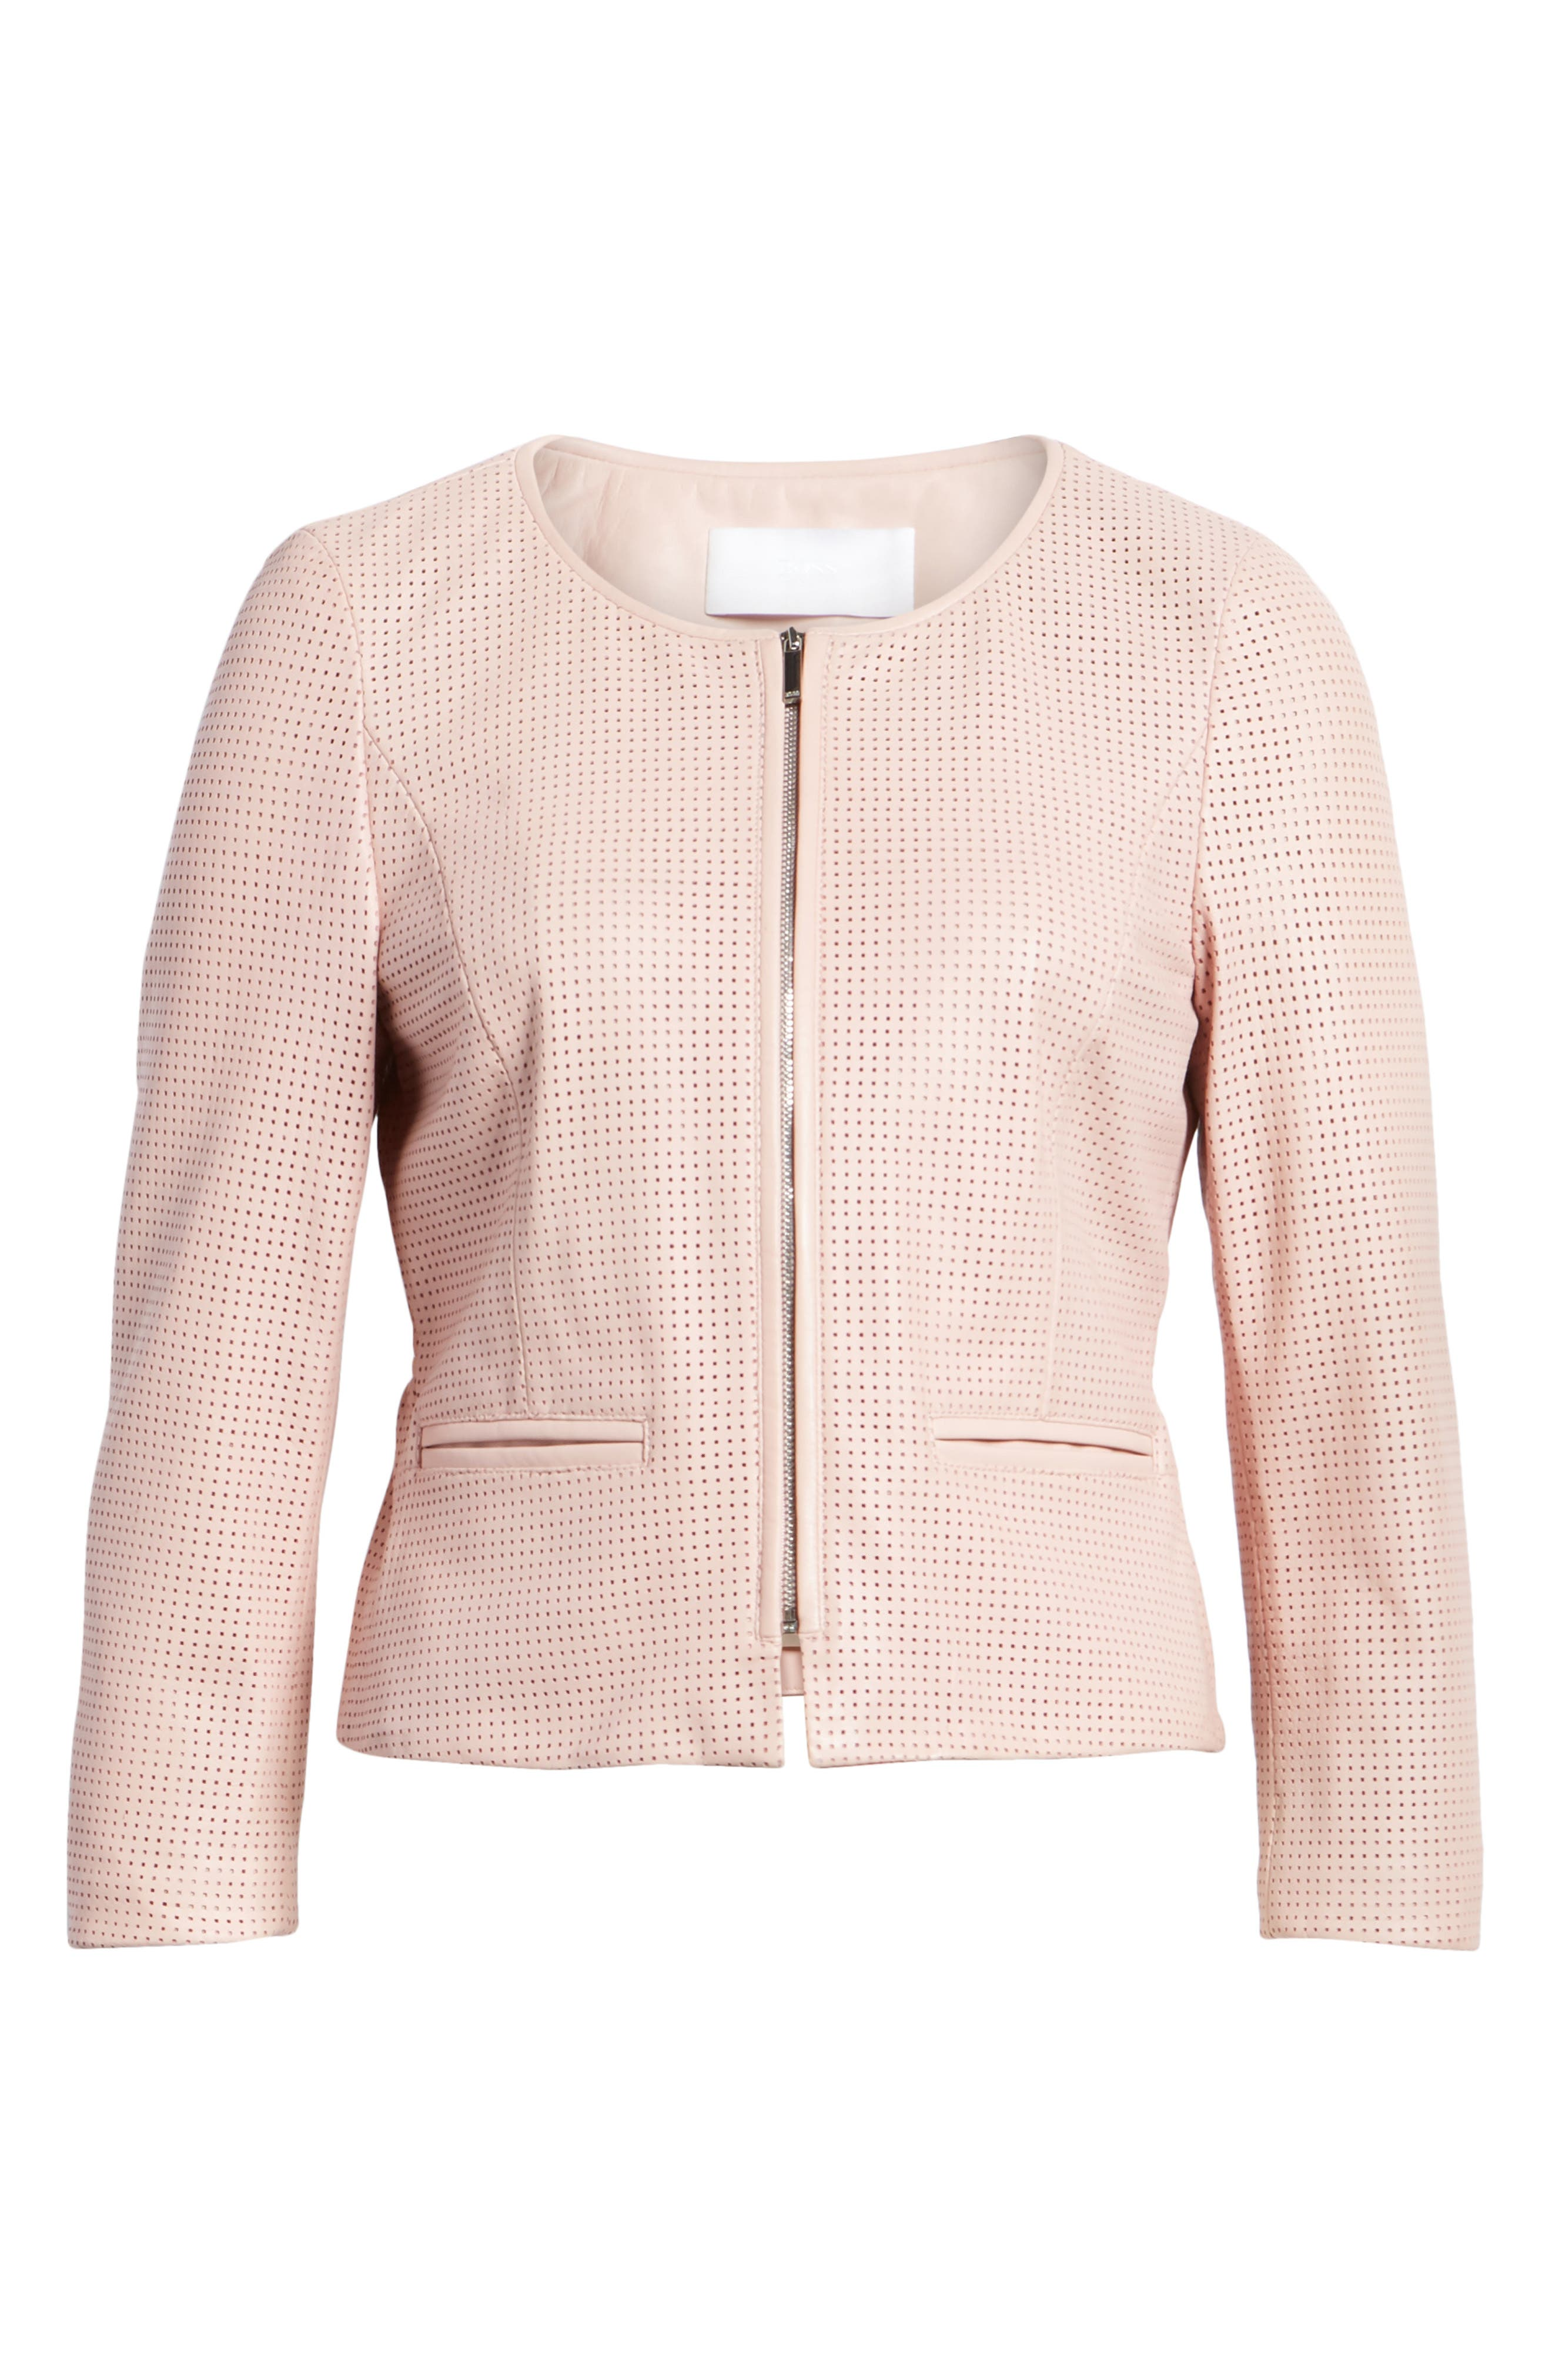 Sallotina Perforated Leather Jacket,                             Alternate thumbnail 6, color,                             682